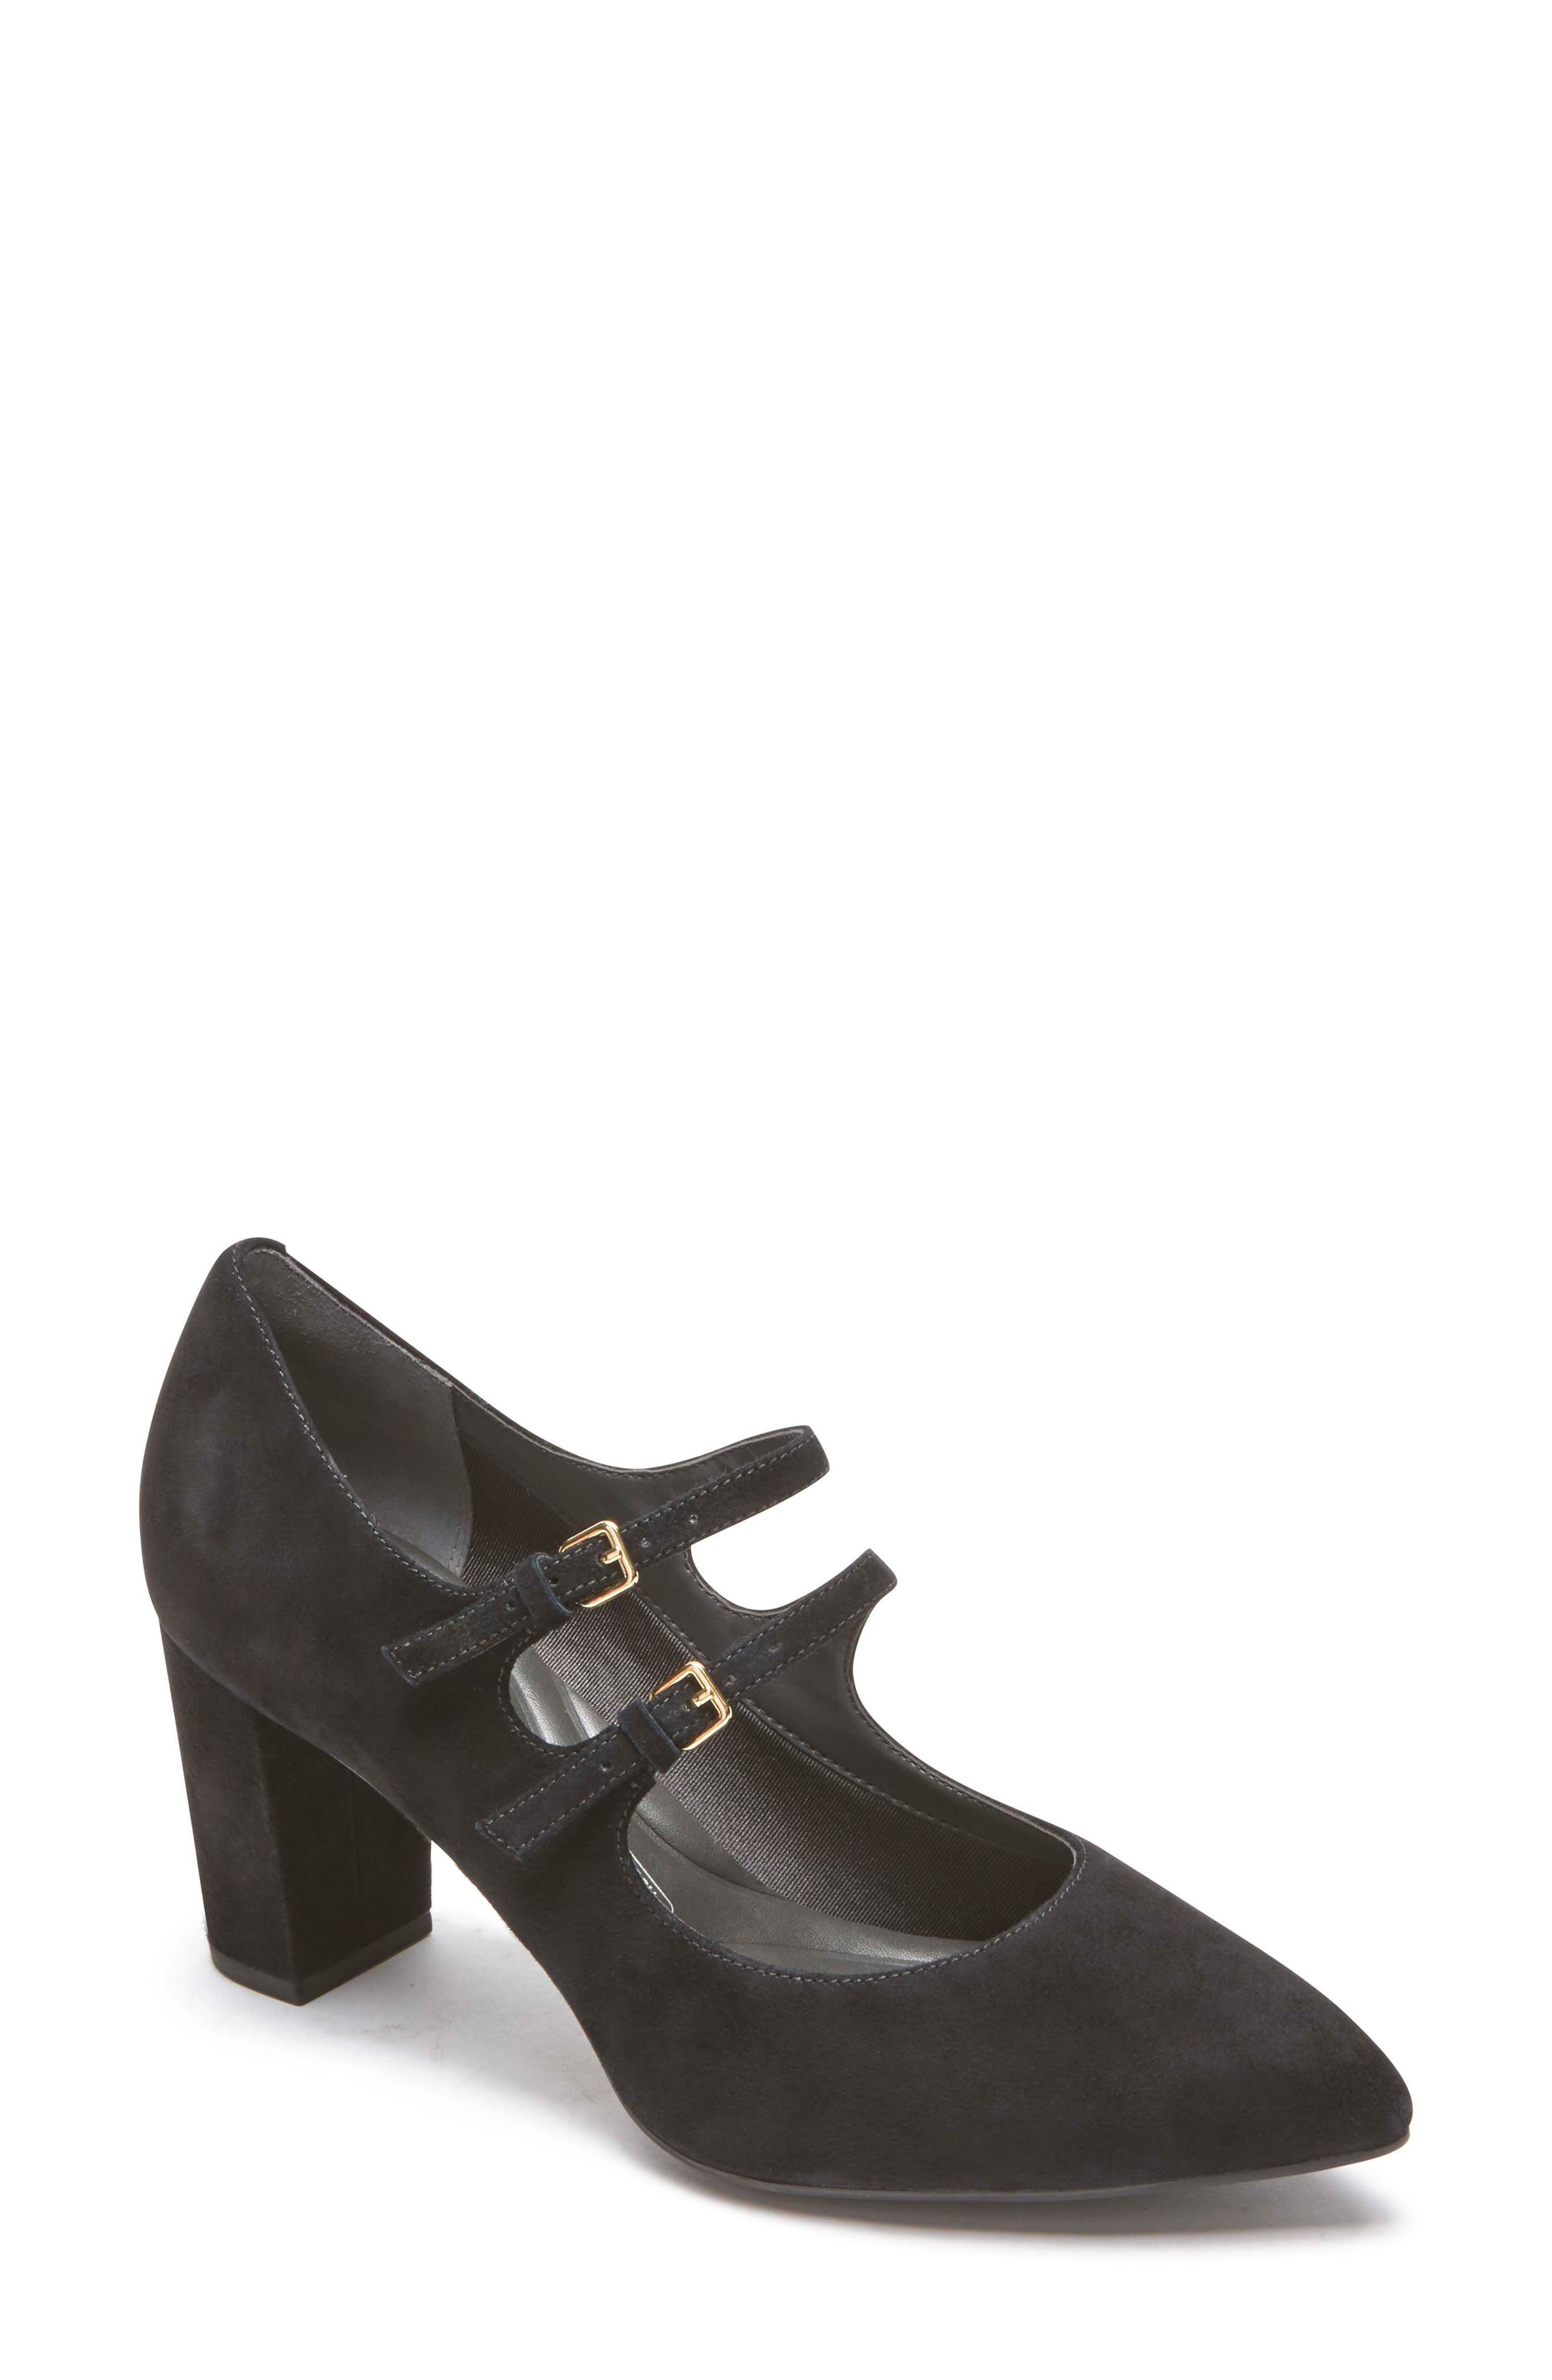 Violina Luxe Double Strap Mary Jane Pump,                         Main,                         color, BLACK SUEDE